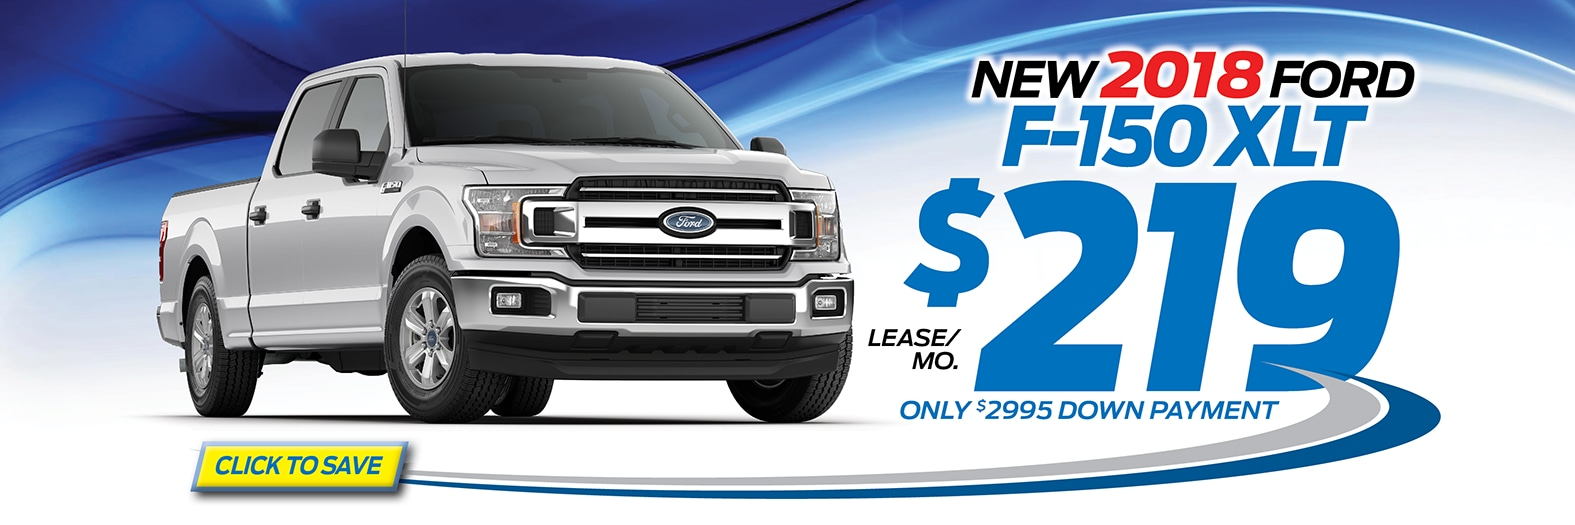 Ford Of Englewood Ford Dealership Englewood NJ Near NYC - Ford dealers in nj